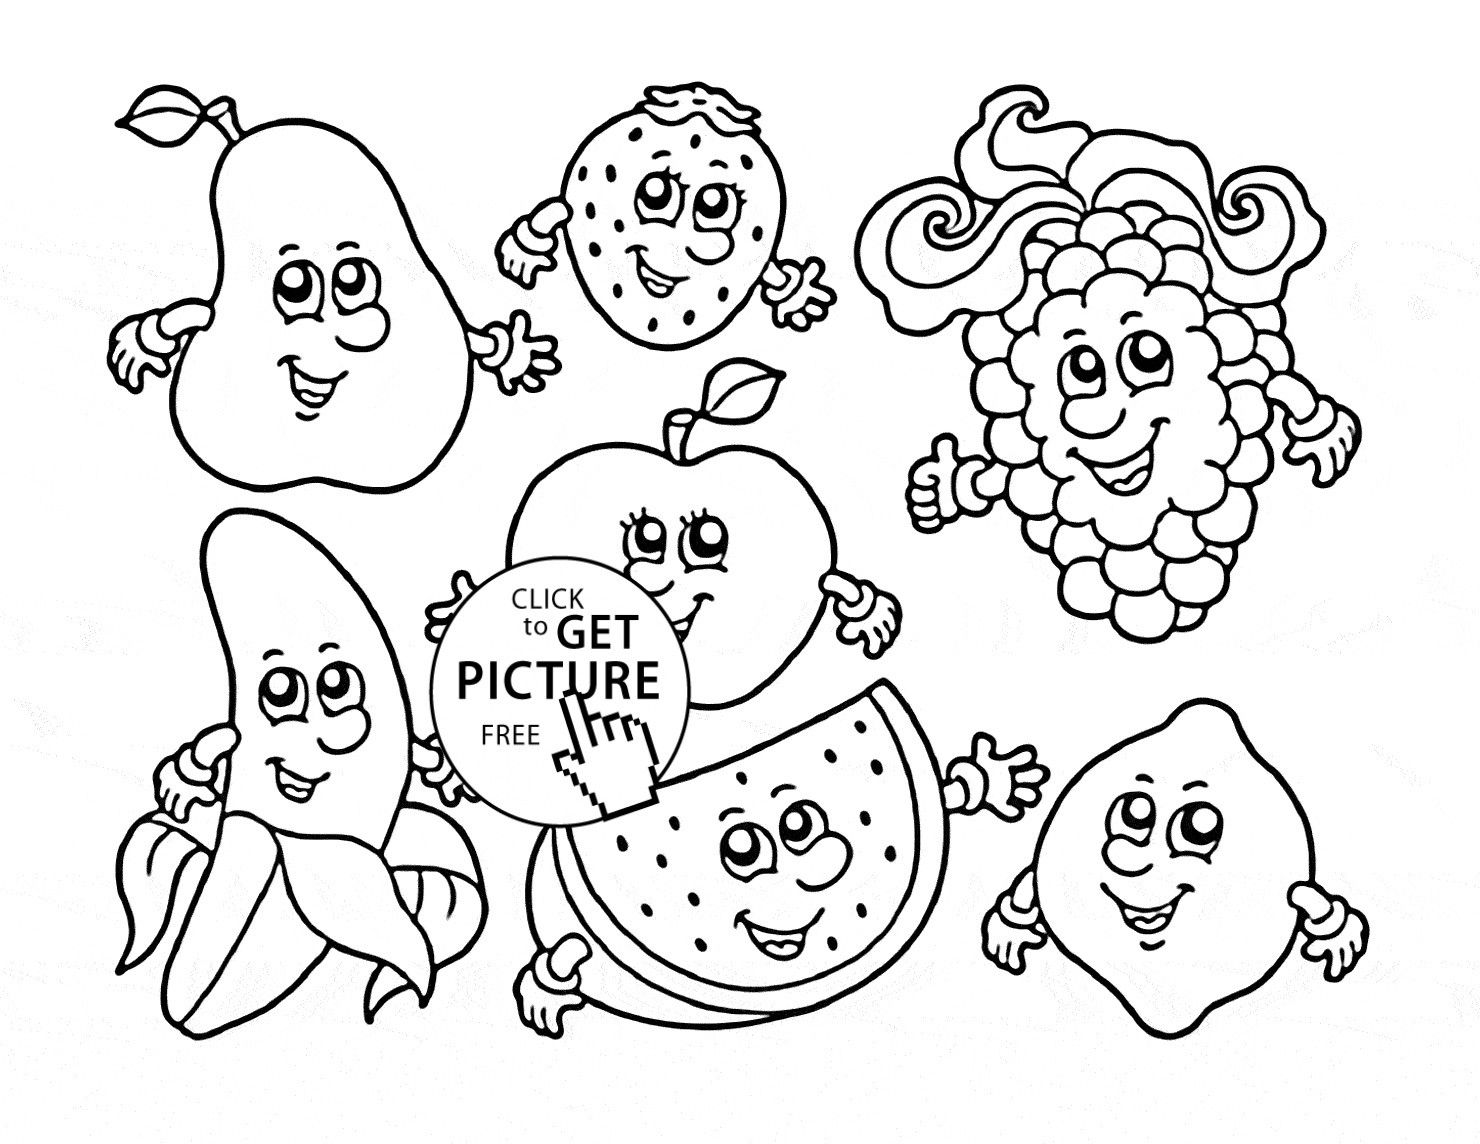 Fruits And Vegetables Coloring Pages Cartoon Fruits And Vegetables Coloring Pages Gallery 11 T On Fruit Albanysinsanity Com Fruit Coloring Pages Cartoon Coloring Pages Vegetable Coloring Pages